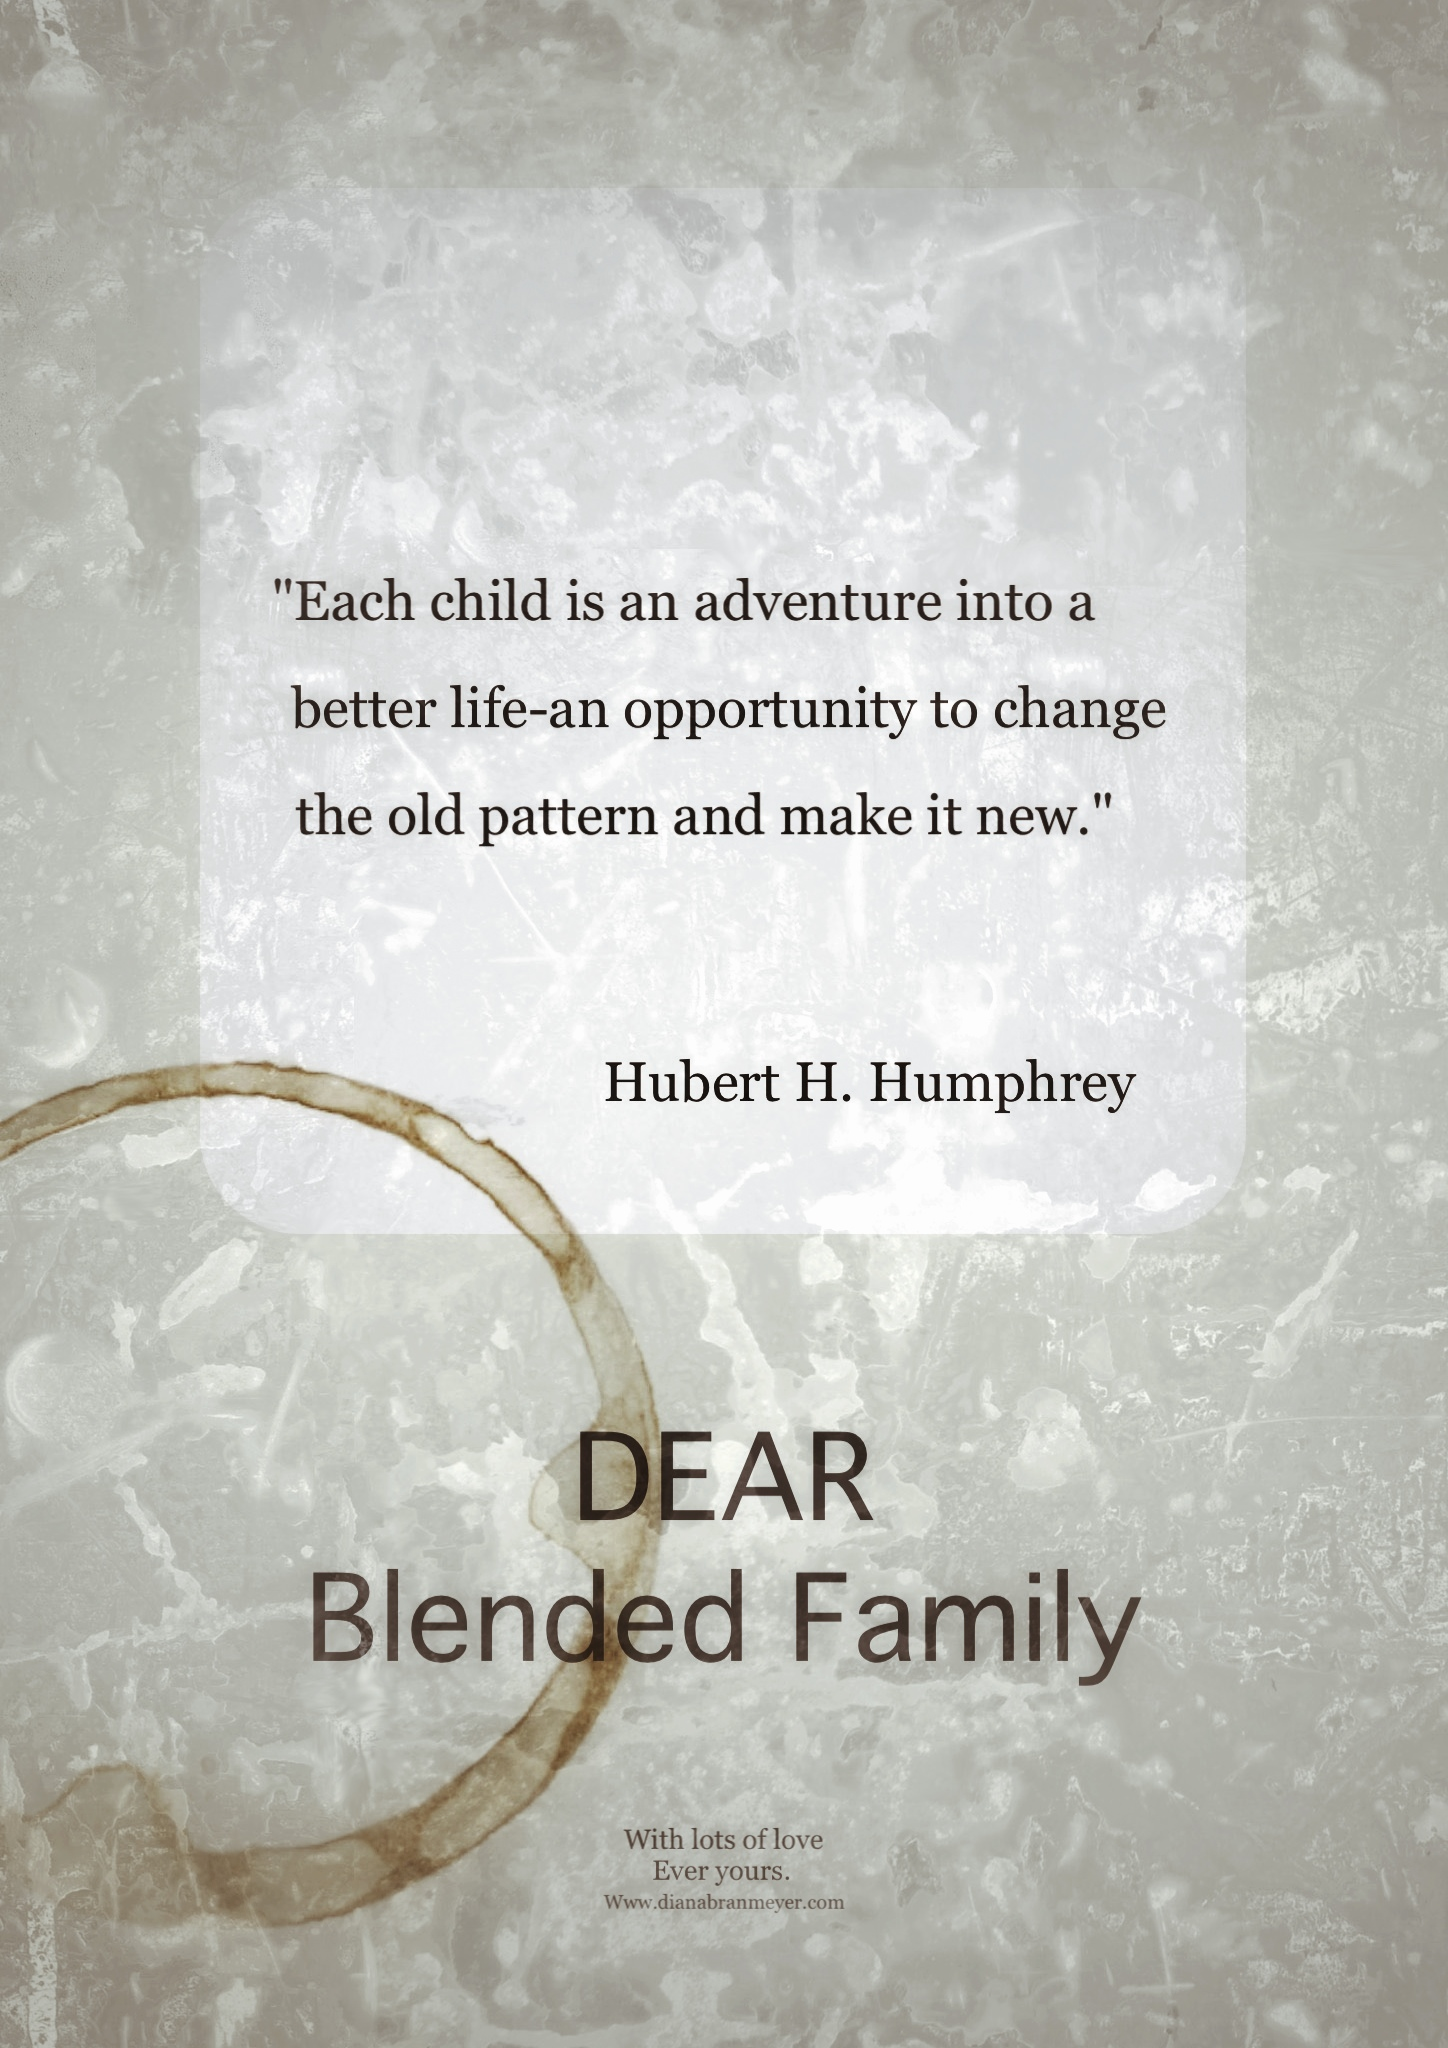 Quotes about blended families 40 quotes